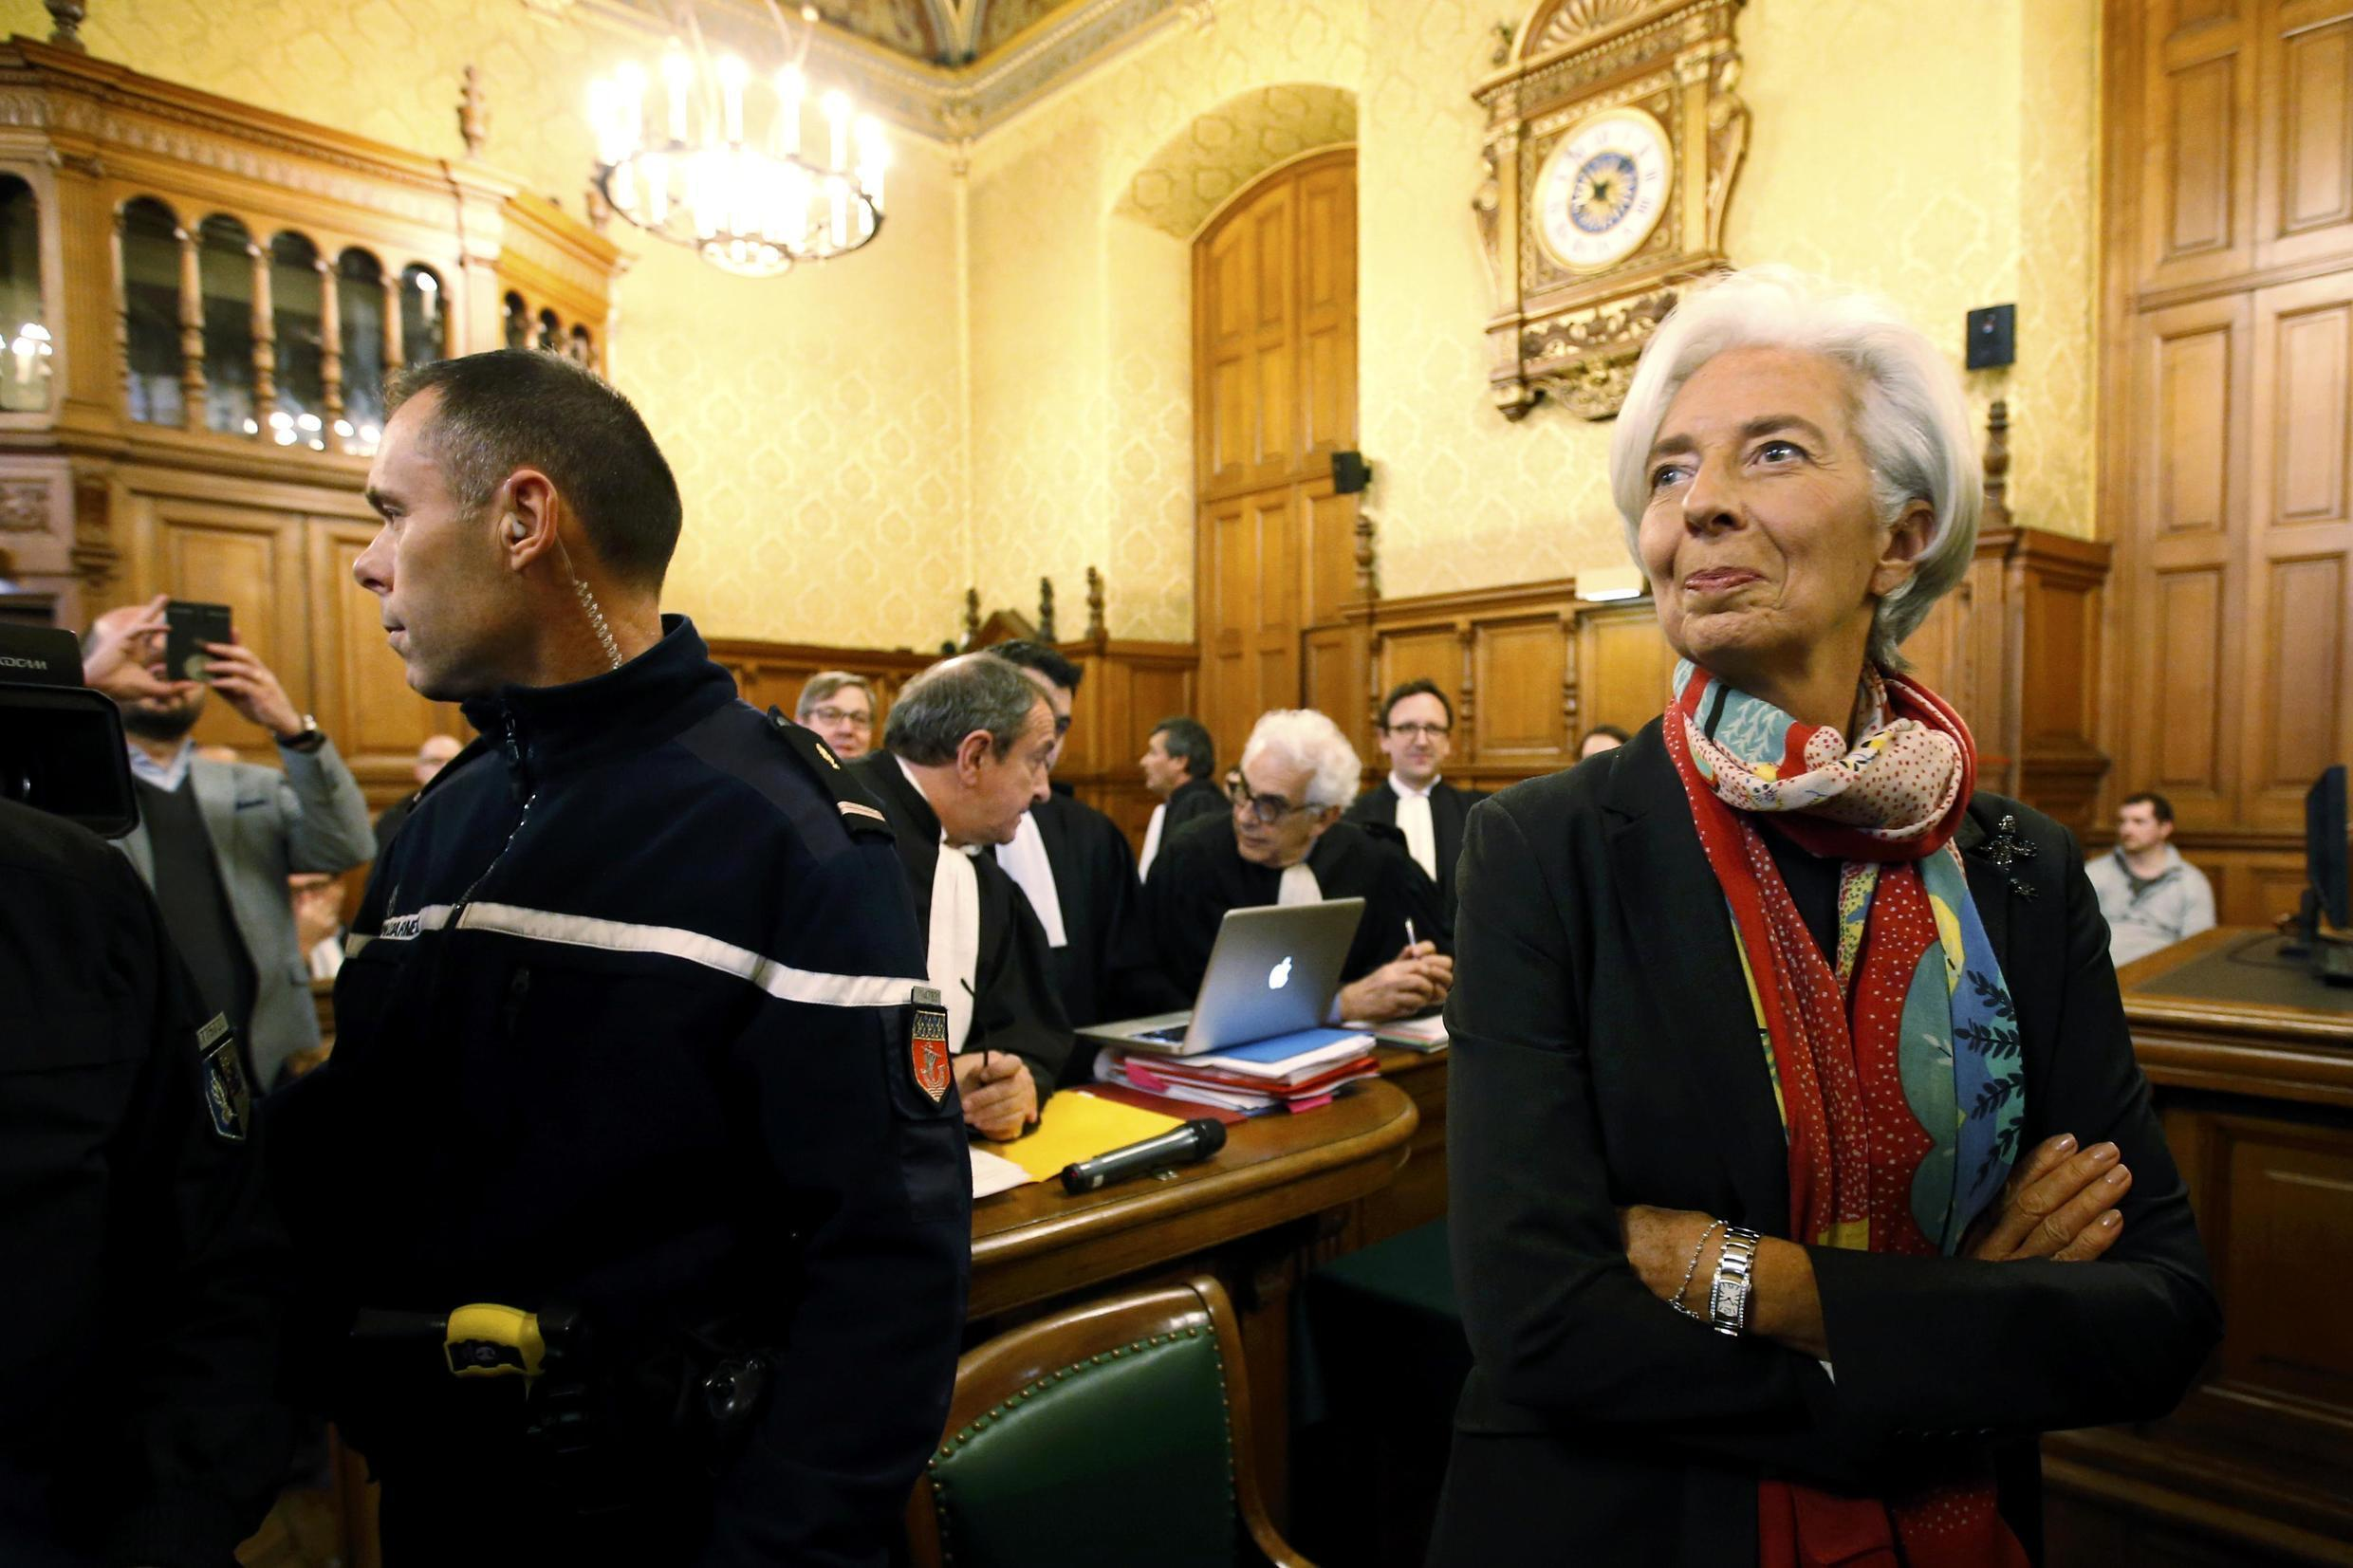 Managing Director of the International Monetary Fund (IMF) Christine Lagarde reacts before the start of her trial about a state payout in 2008 to a French businessman, at the courts in Paris, France, December 12, 2016.